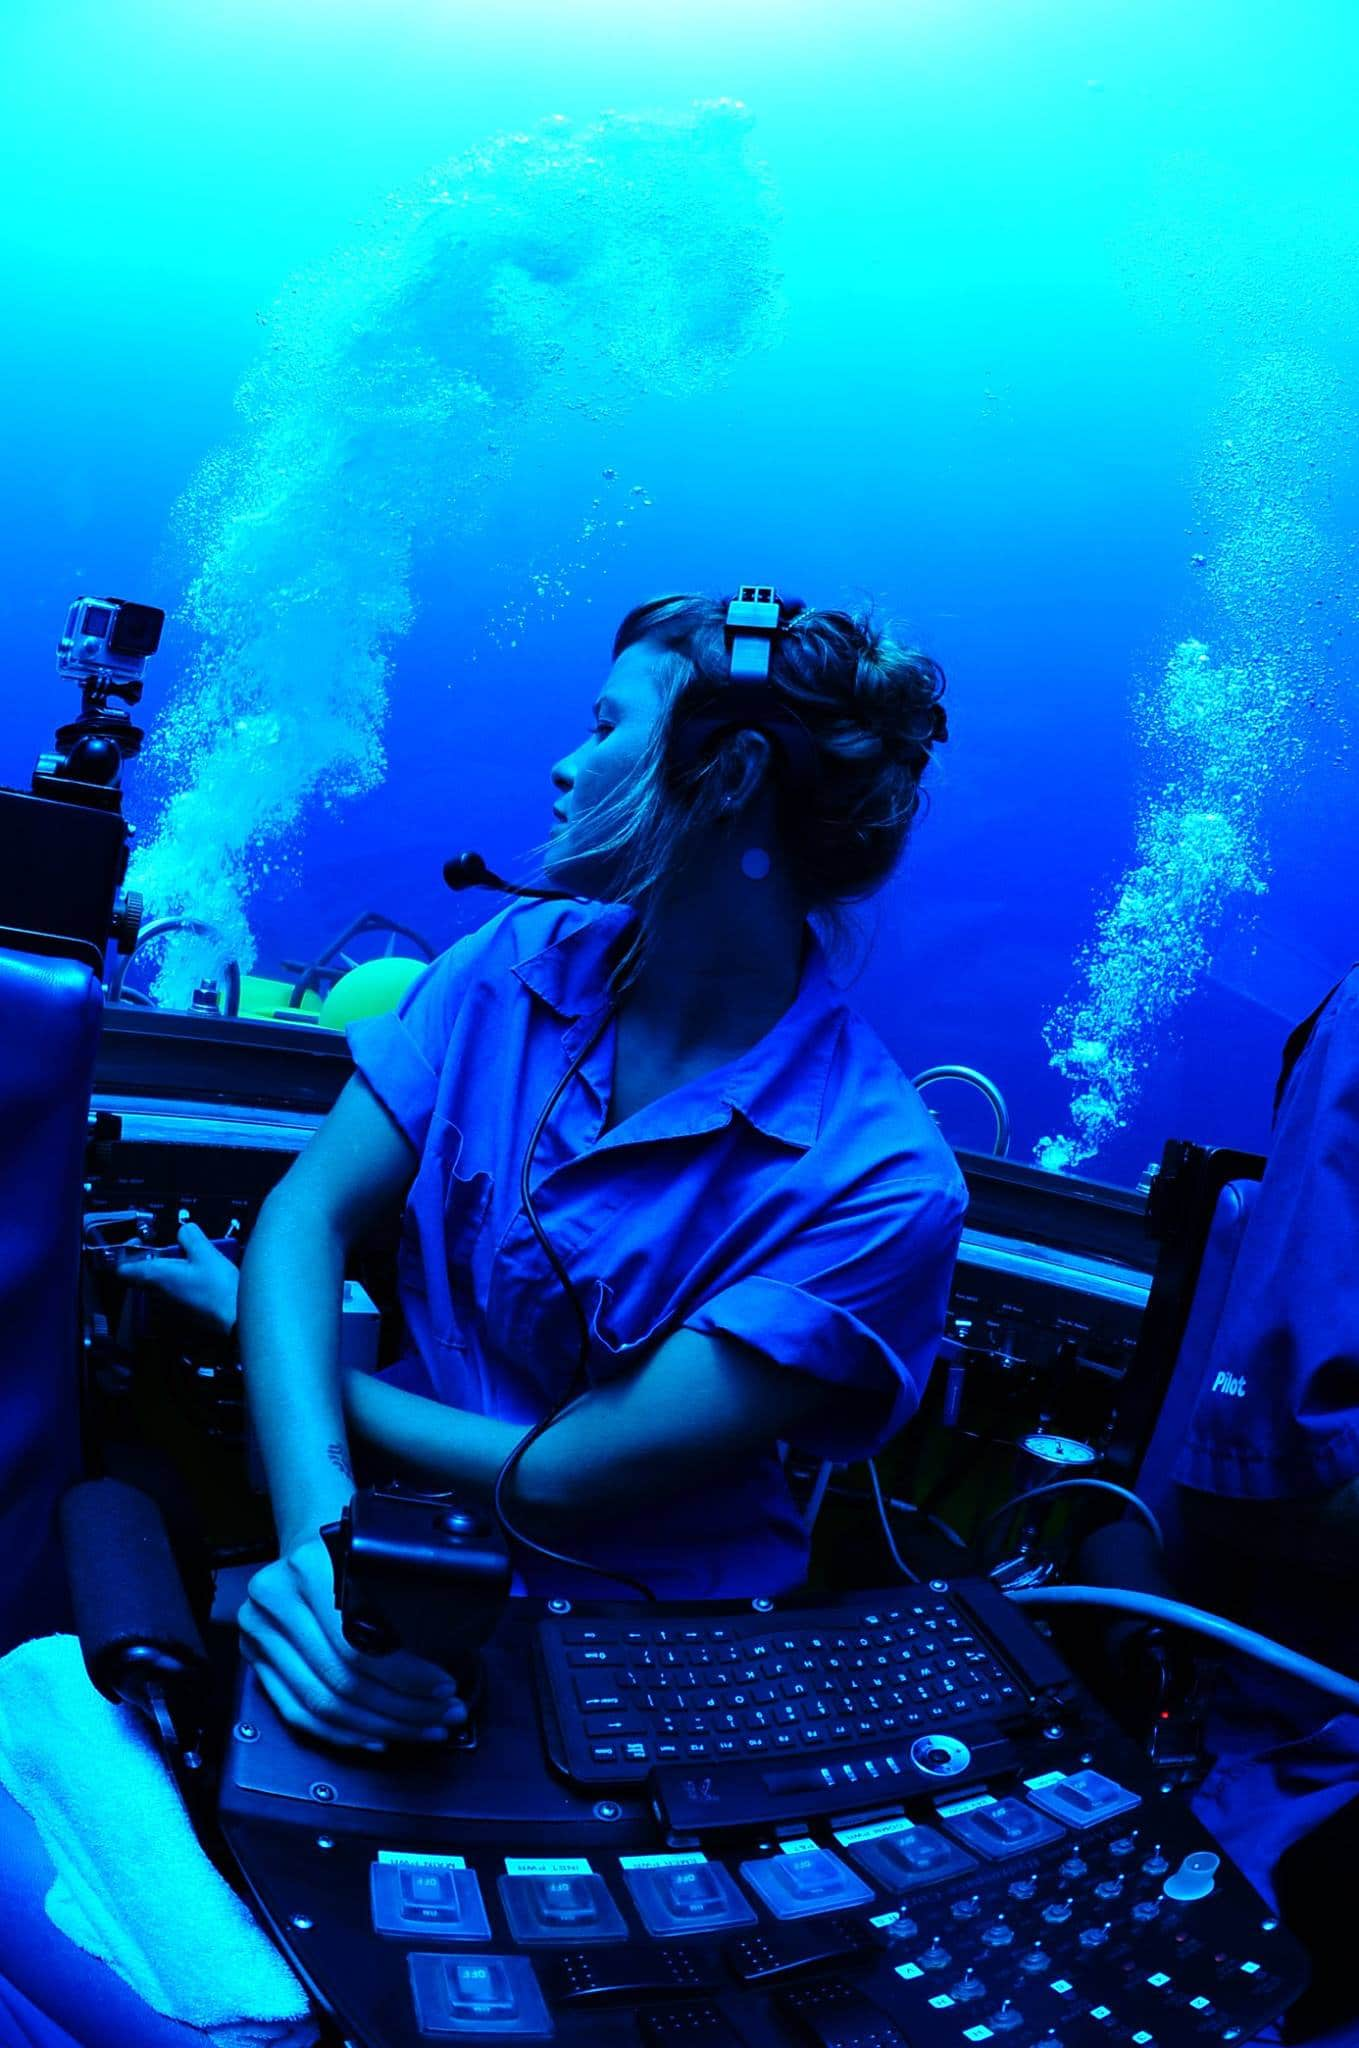 Diana Garcia Benito inside a submarine pilotting it underwater